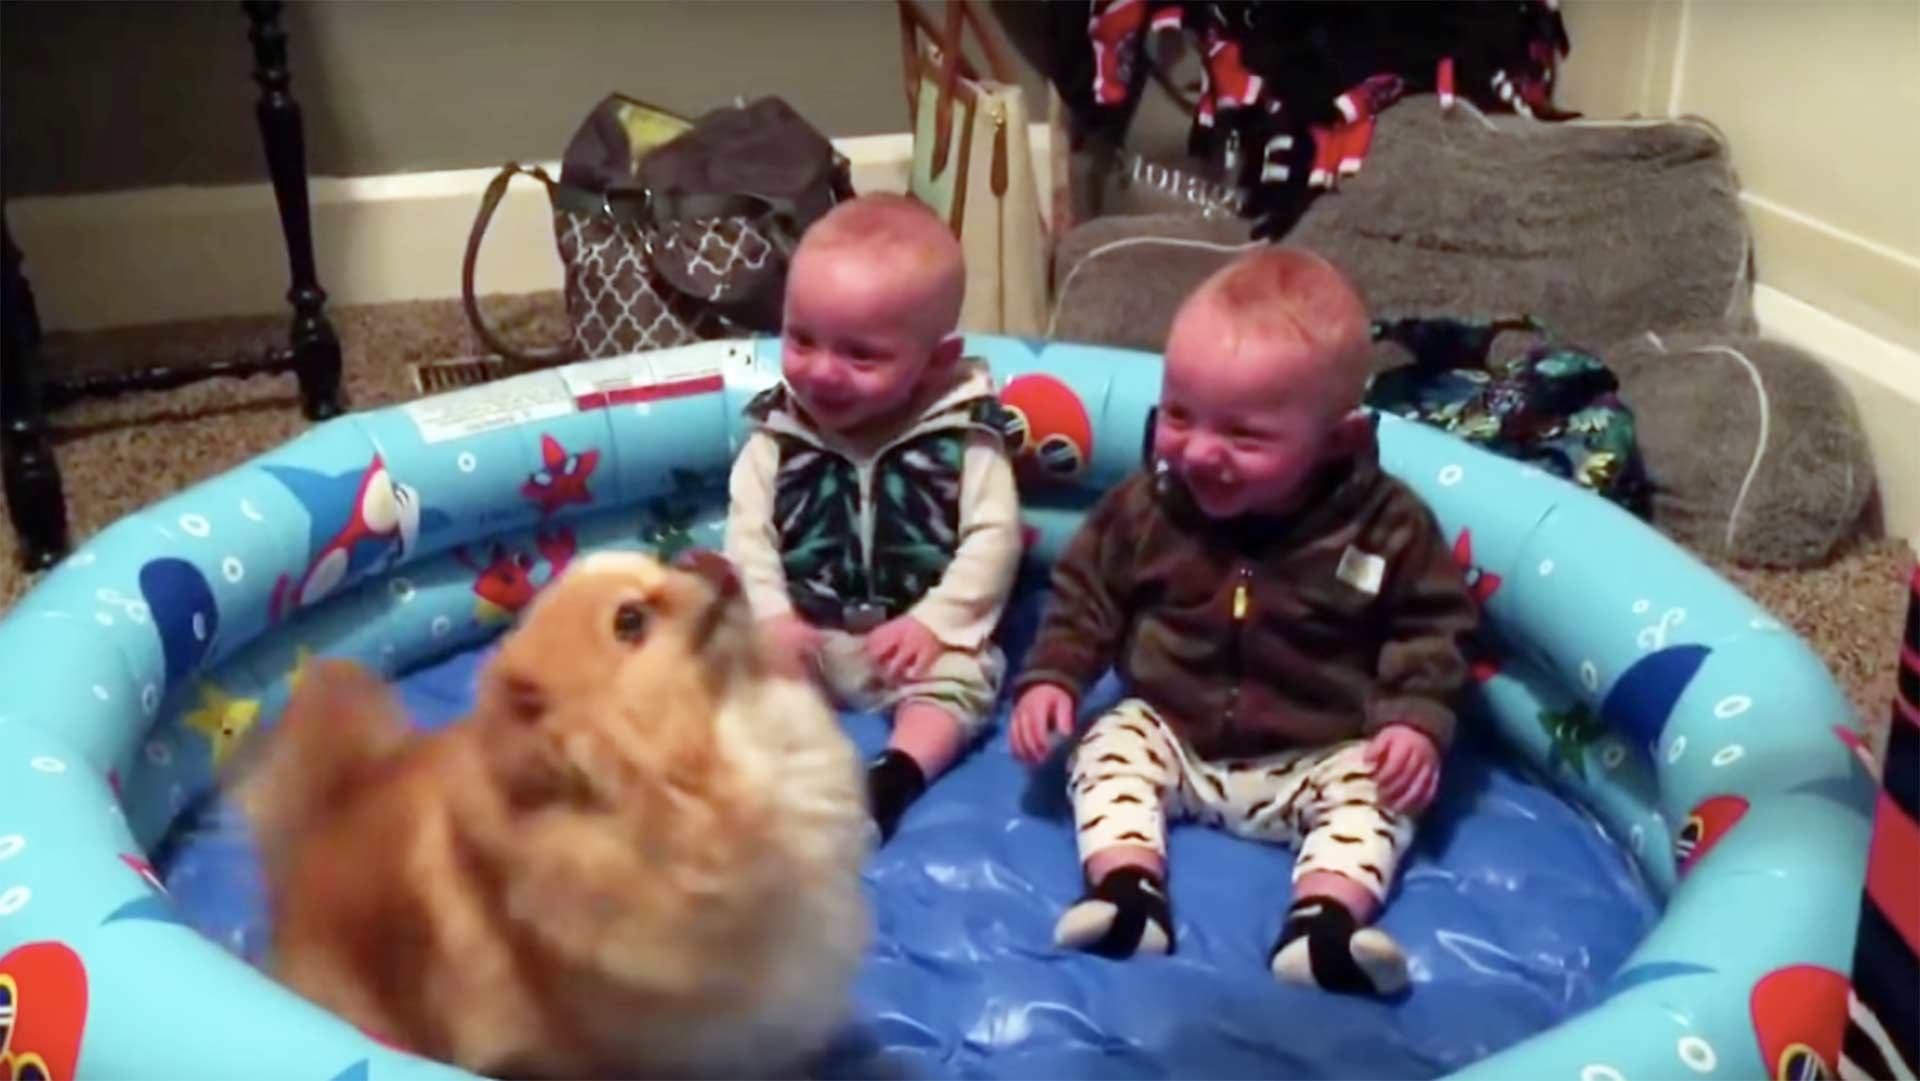 RT @mashable: Warning: toddler twins laughing at their dog is highly contagious http://t.co/jRCJiI9Lzb http://t.co/dGzdi0T2it